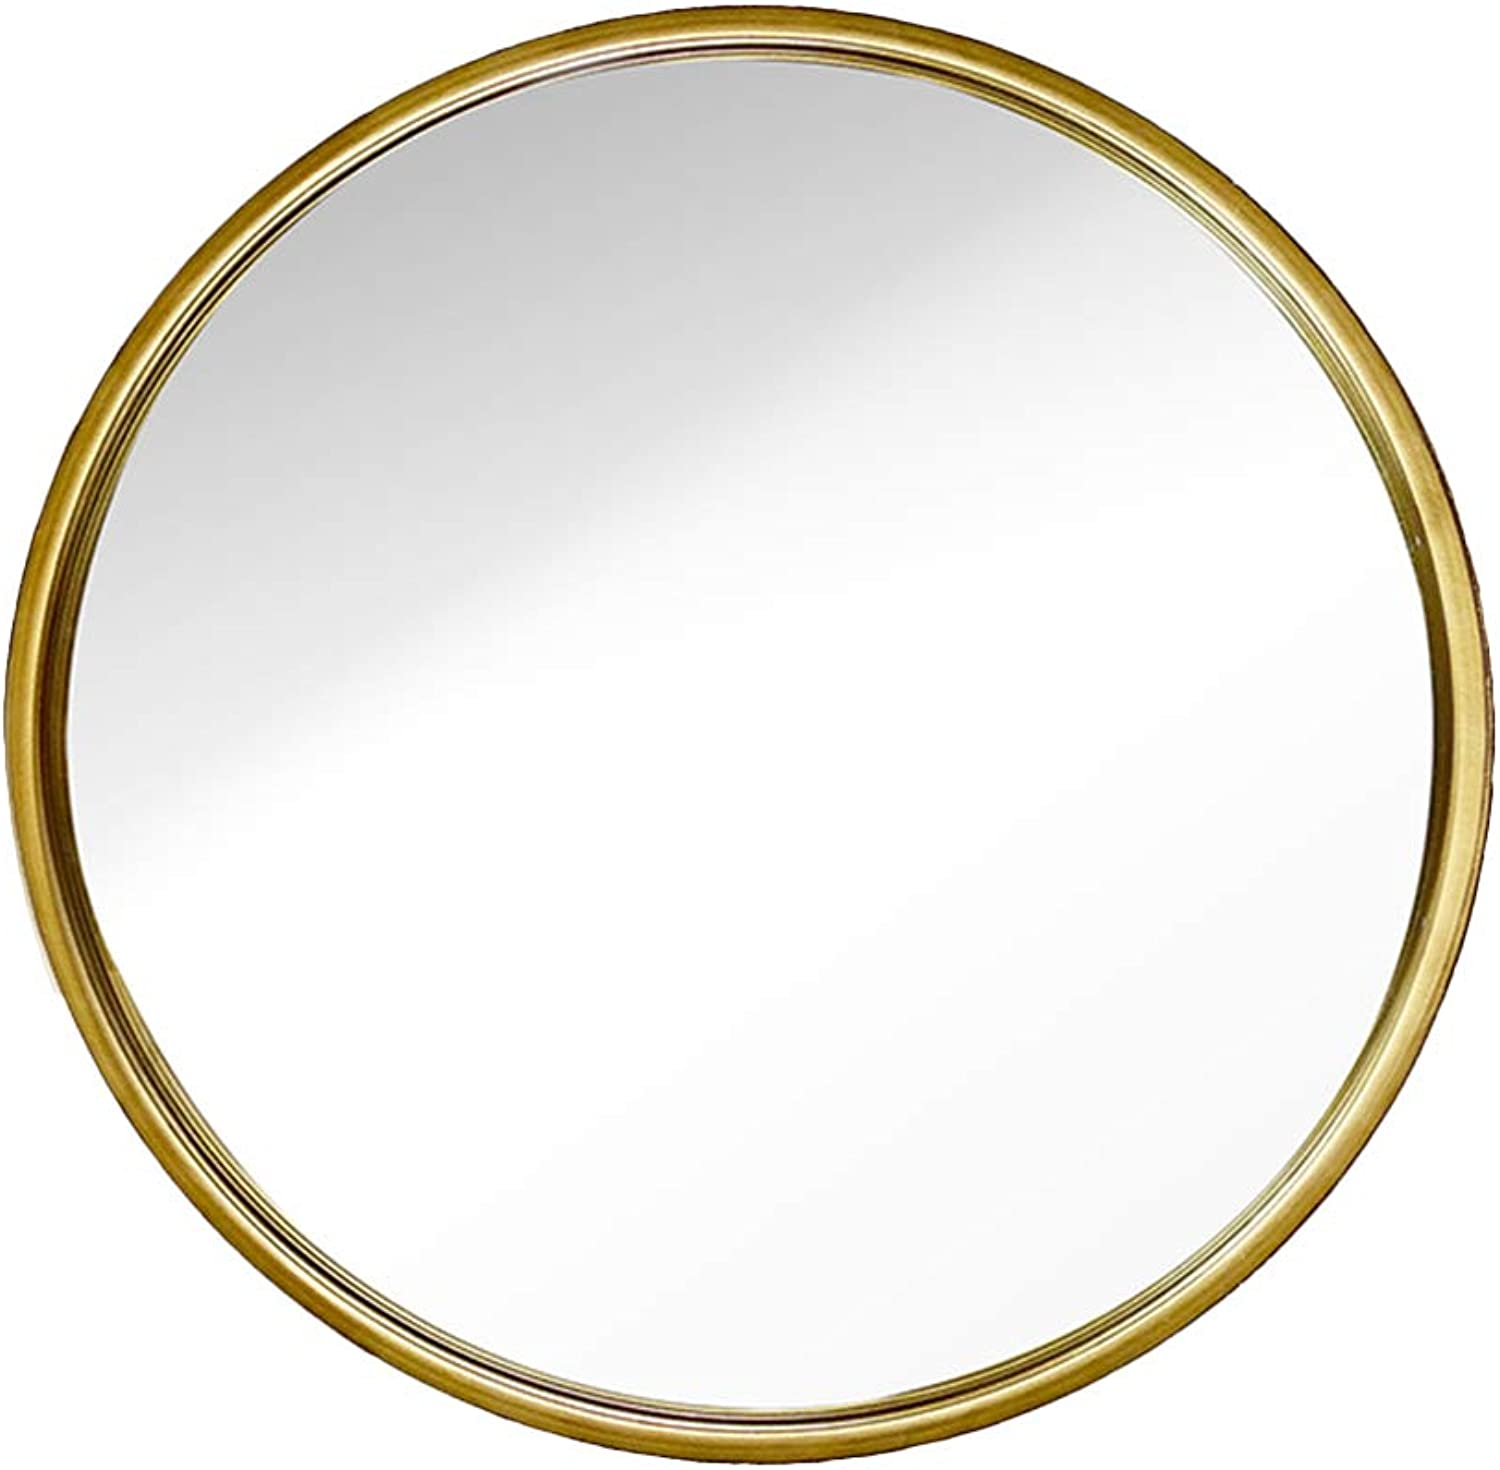 Mirror Iron Wall Hanging Bathroom Wall-Mounted Bathroom Mirror Round Hanging Mirror Bathroom Mirror (color   gold, Size   50  50cm)